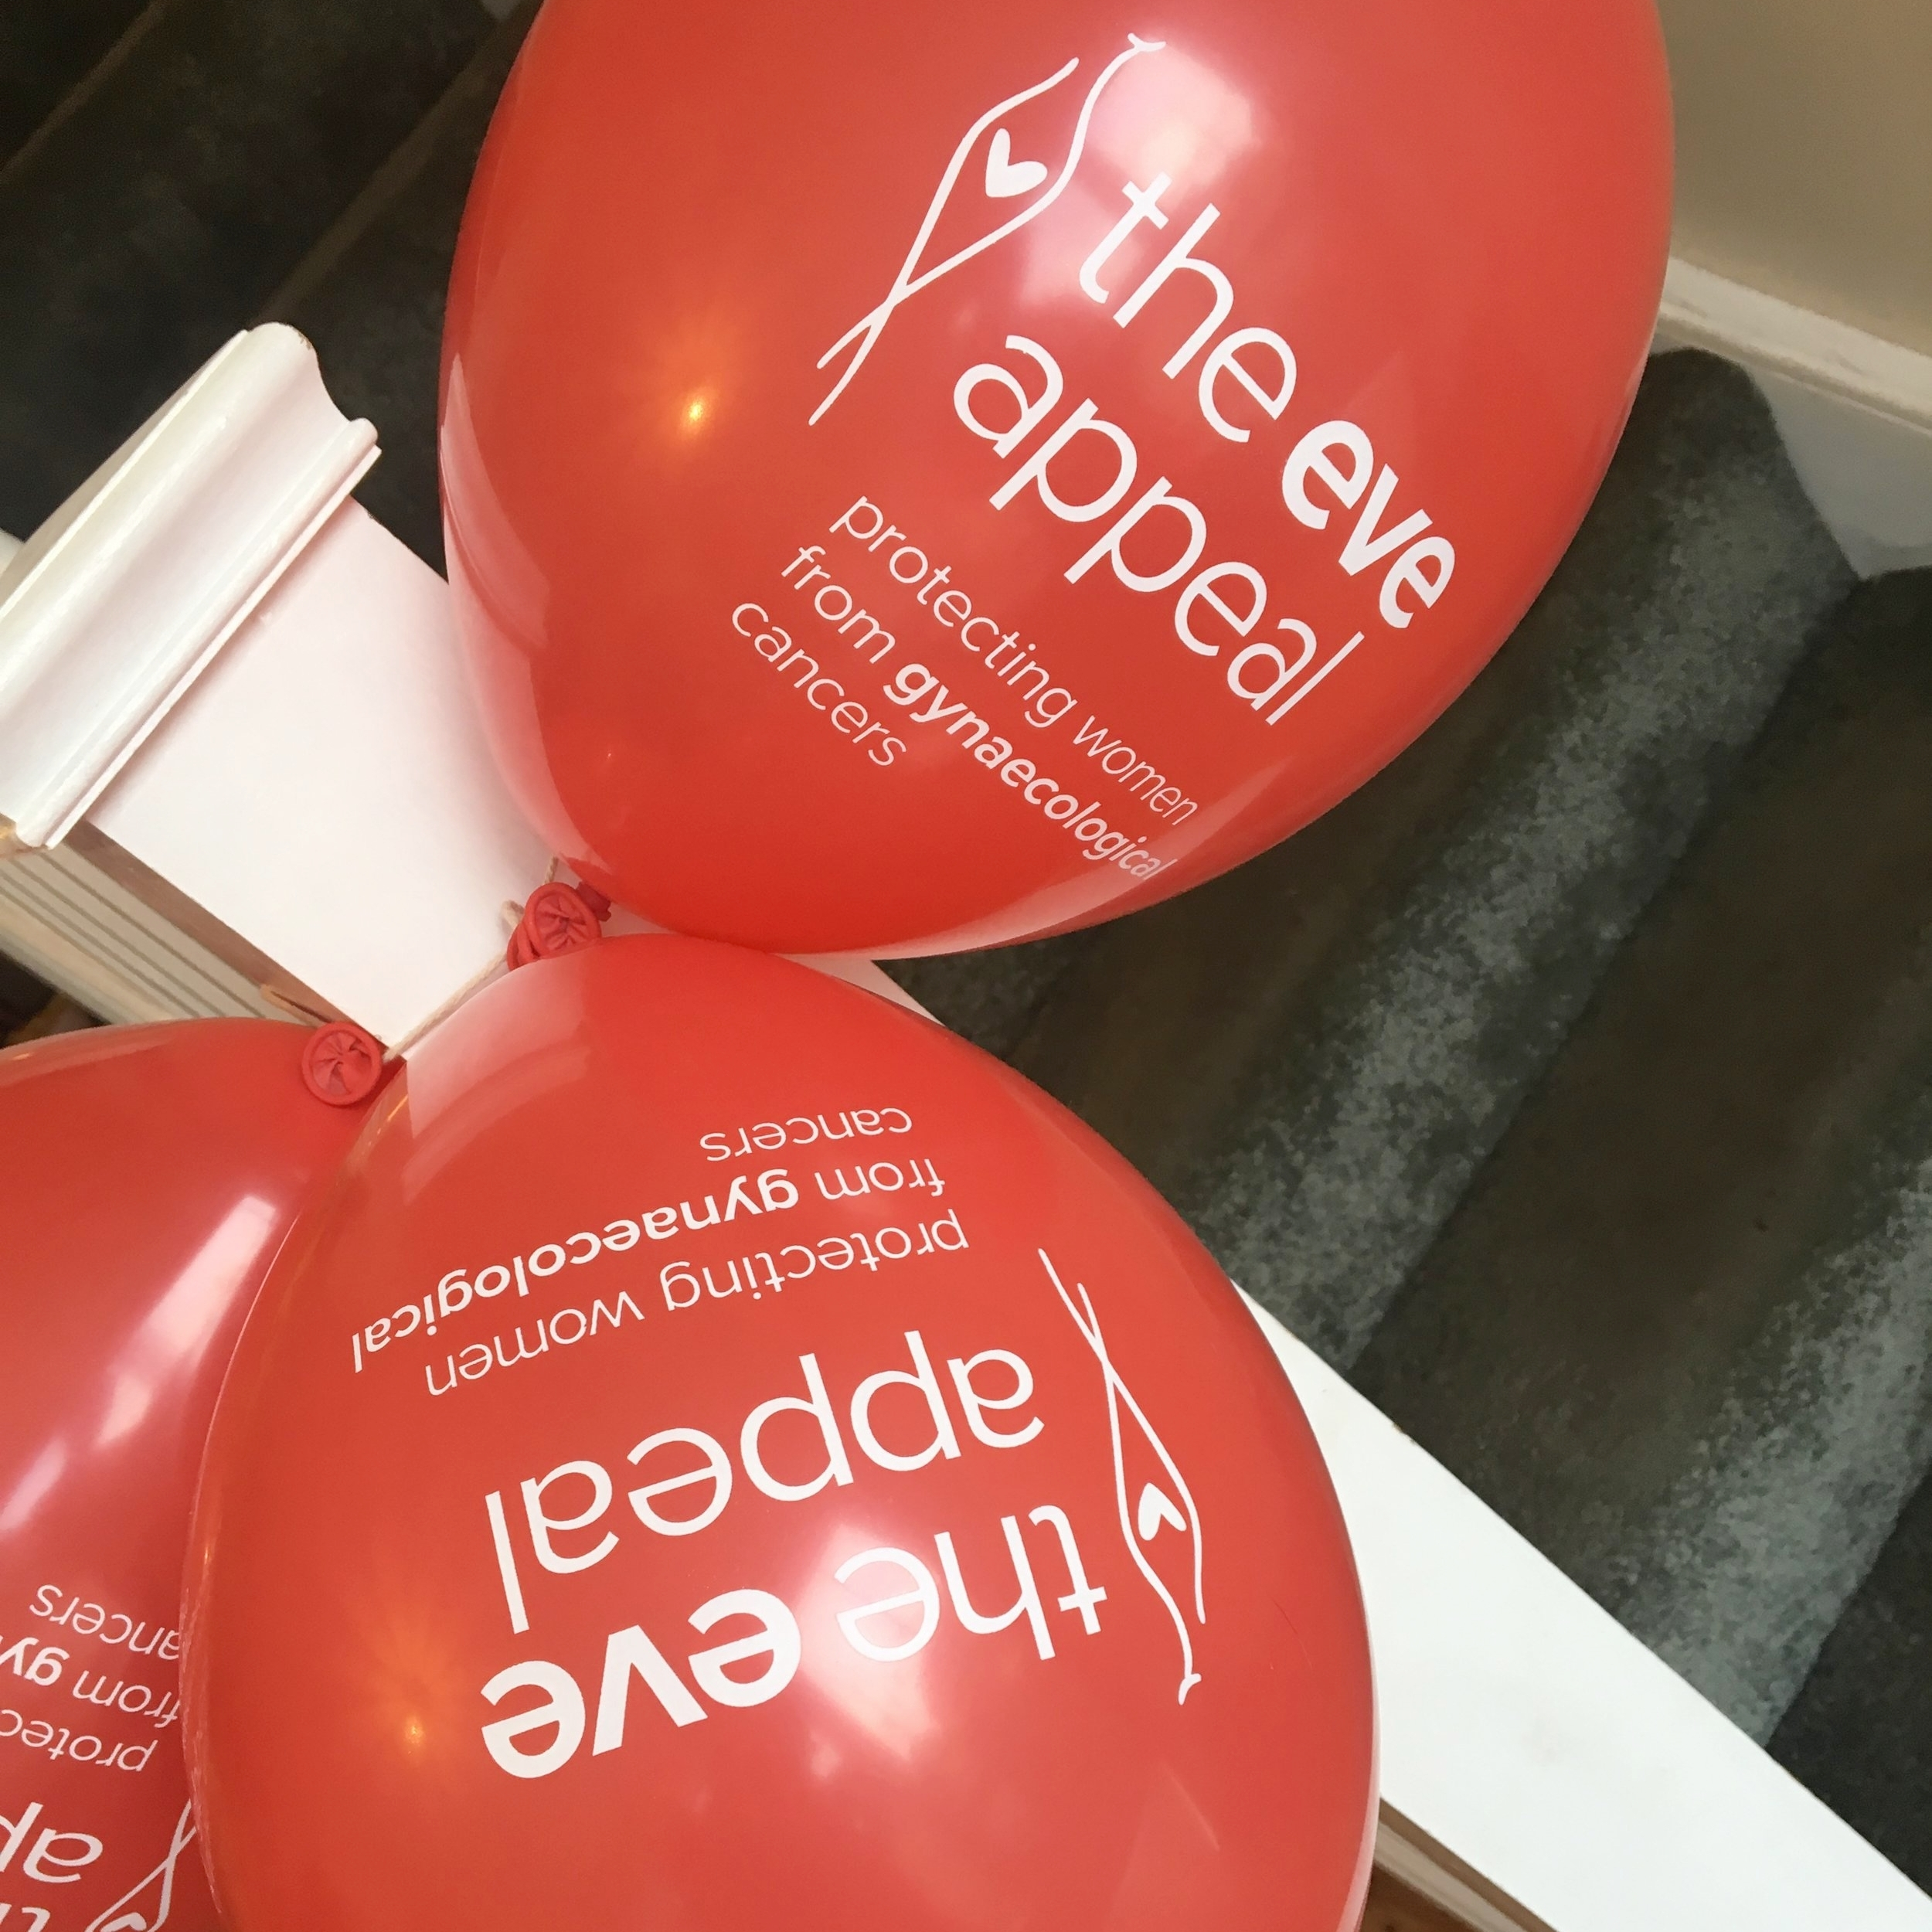 Eve Appeal balloons included in the fundraiser pack